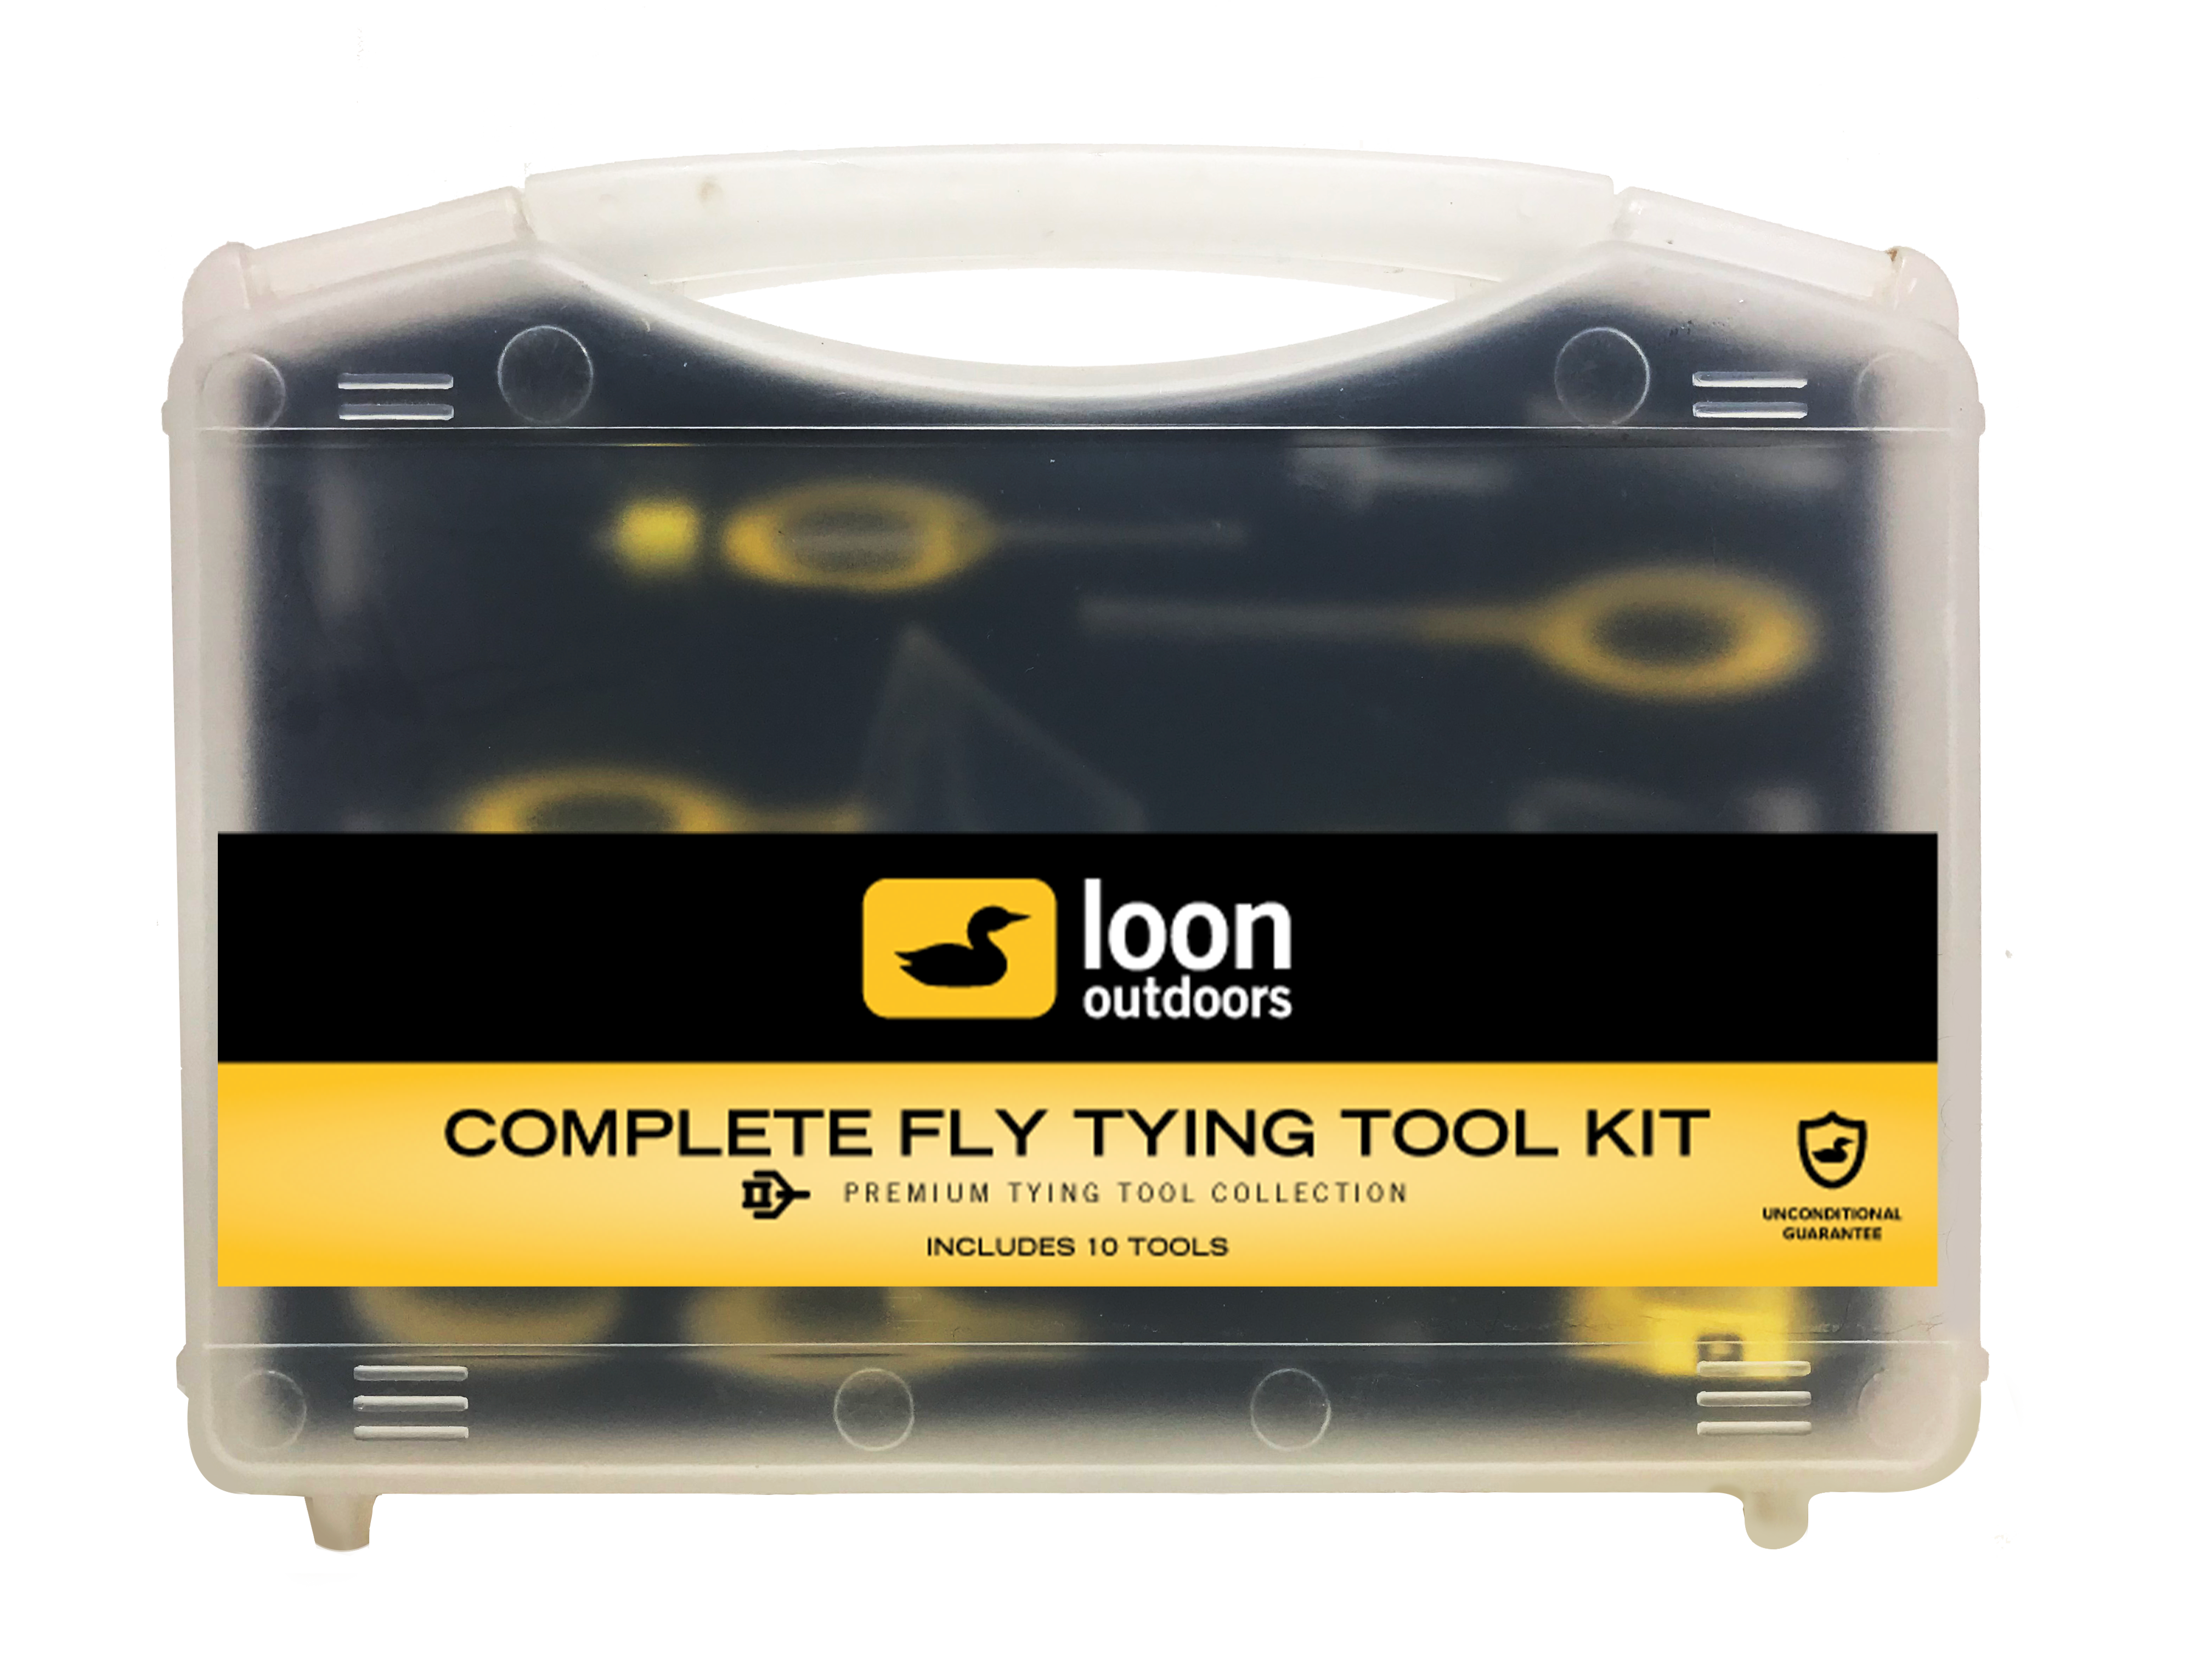 Complete Fly Tying Tool Kit Loon Outdoors